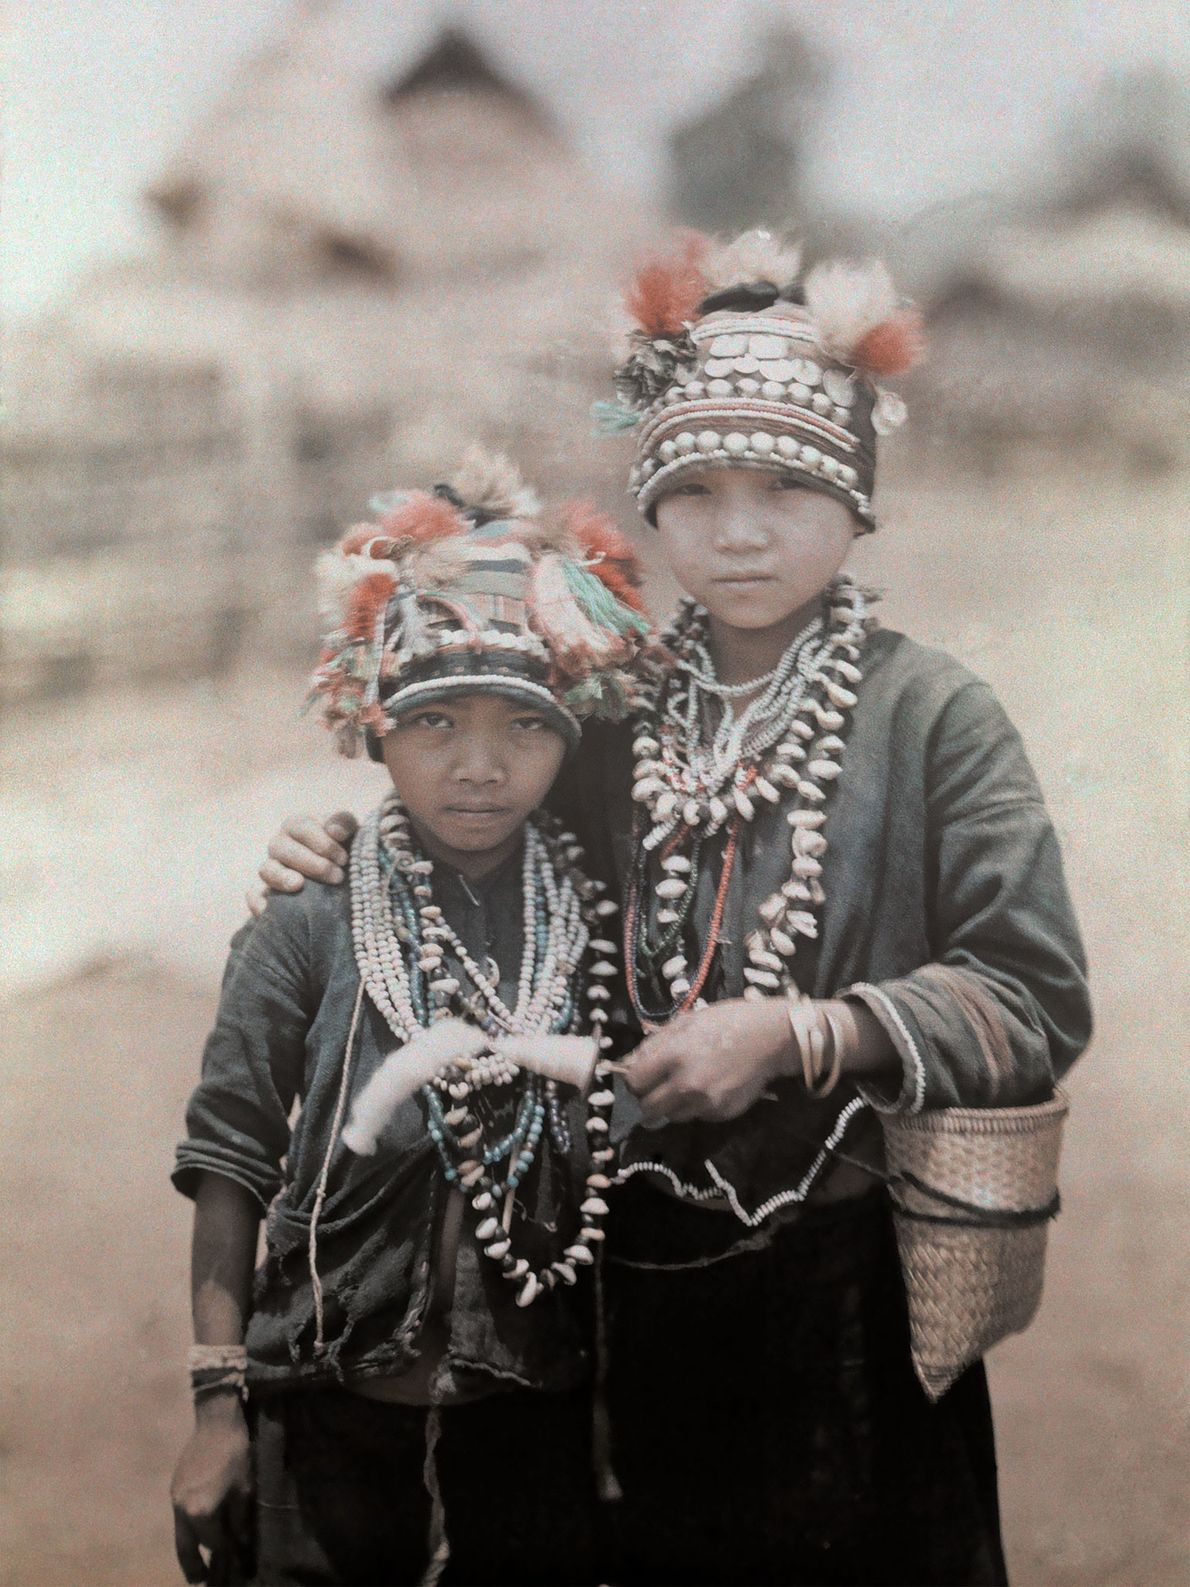 Two young boys of the Shan tribe in Myanmar wear hats covered with tassels and tufts ...